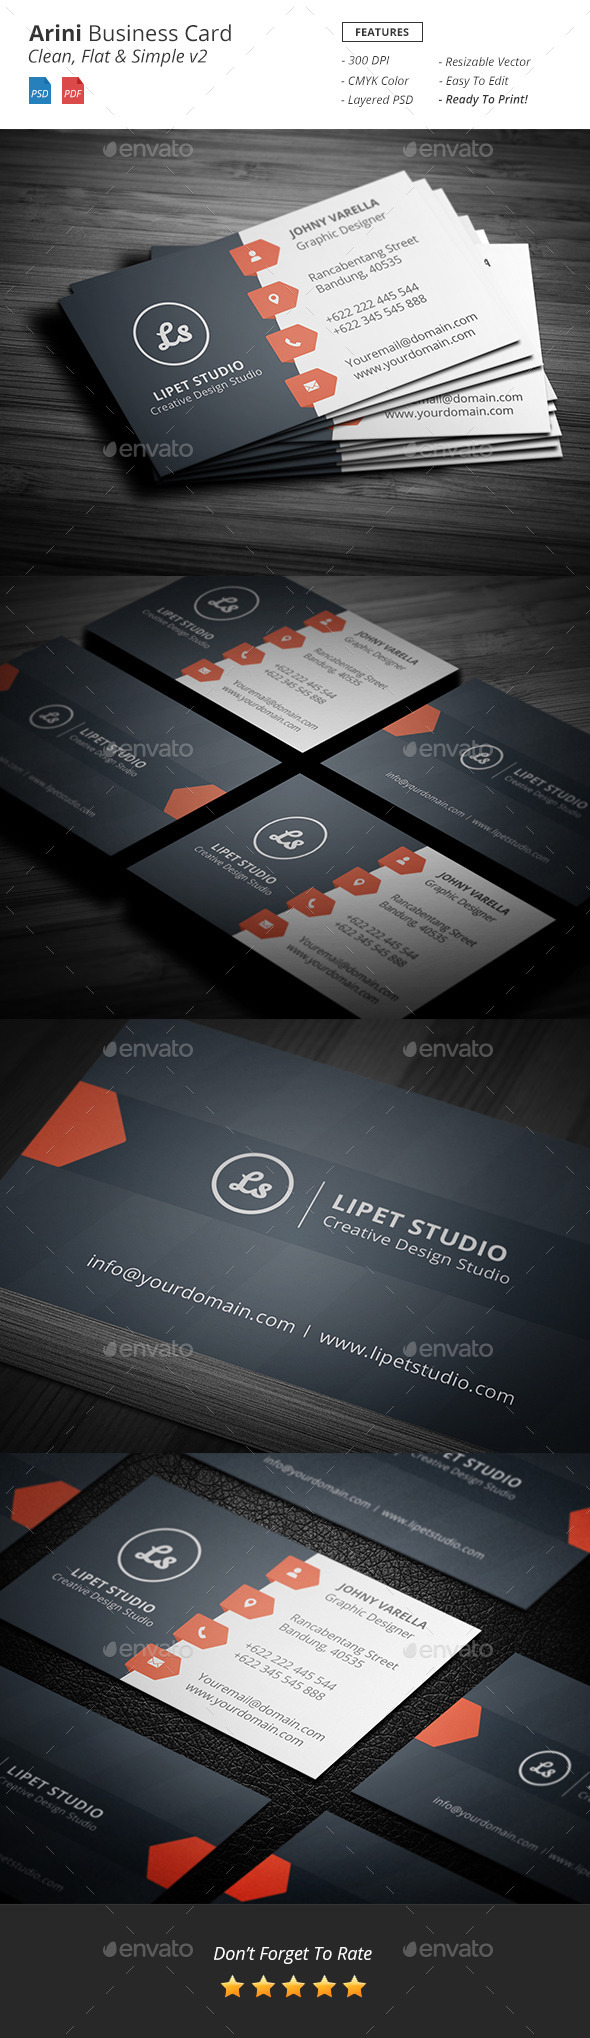 GraphicRiver Arini Clean Business Card Template v2 9801262